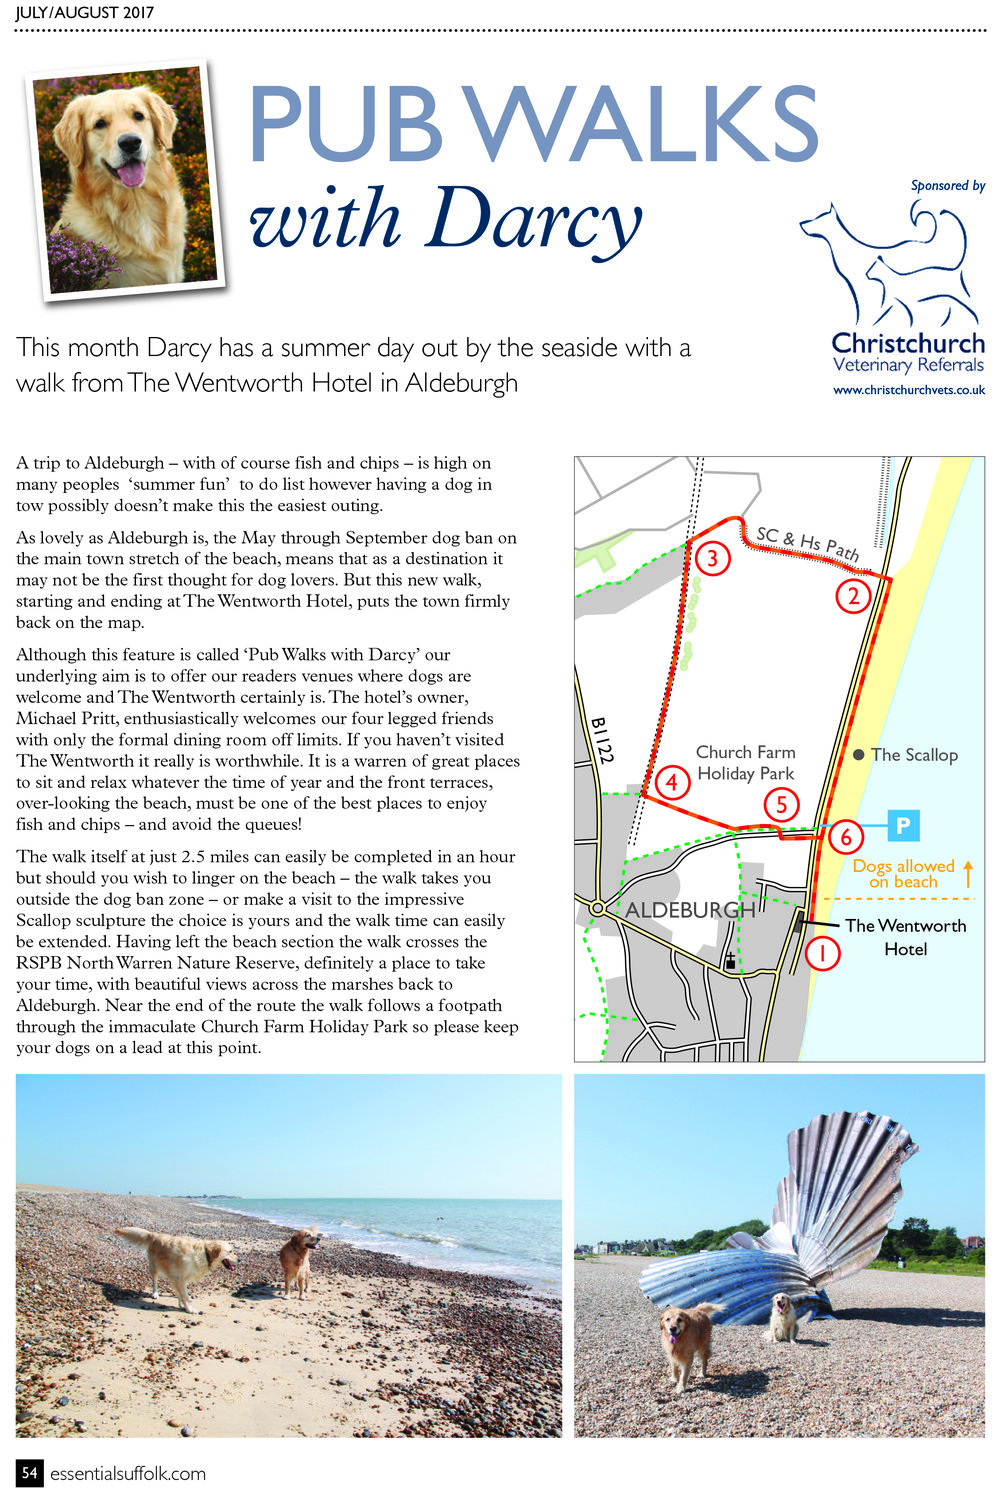 Aldeburgh Dog Walk route 1 page 1